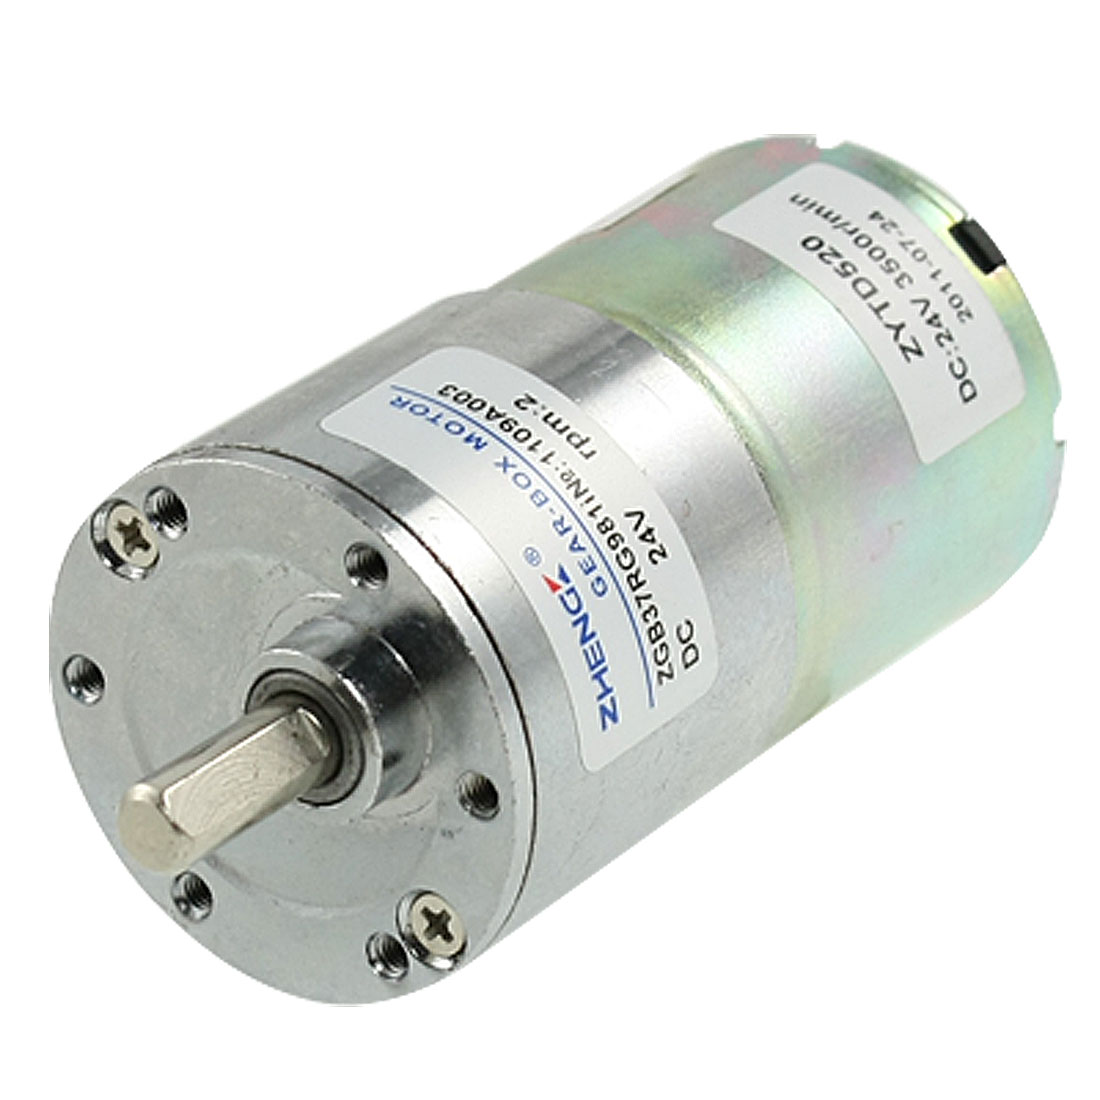 2RPM-Speed-16-5kg-cm-6mm-Diameter-Shaft-DC-24V-0-33A-Geared-Motor